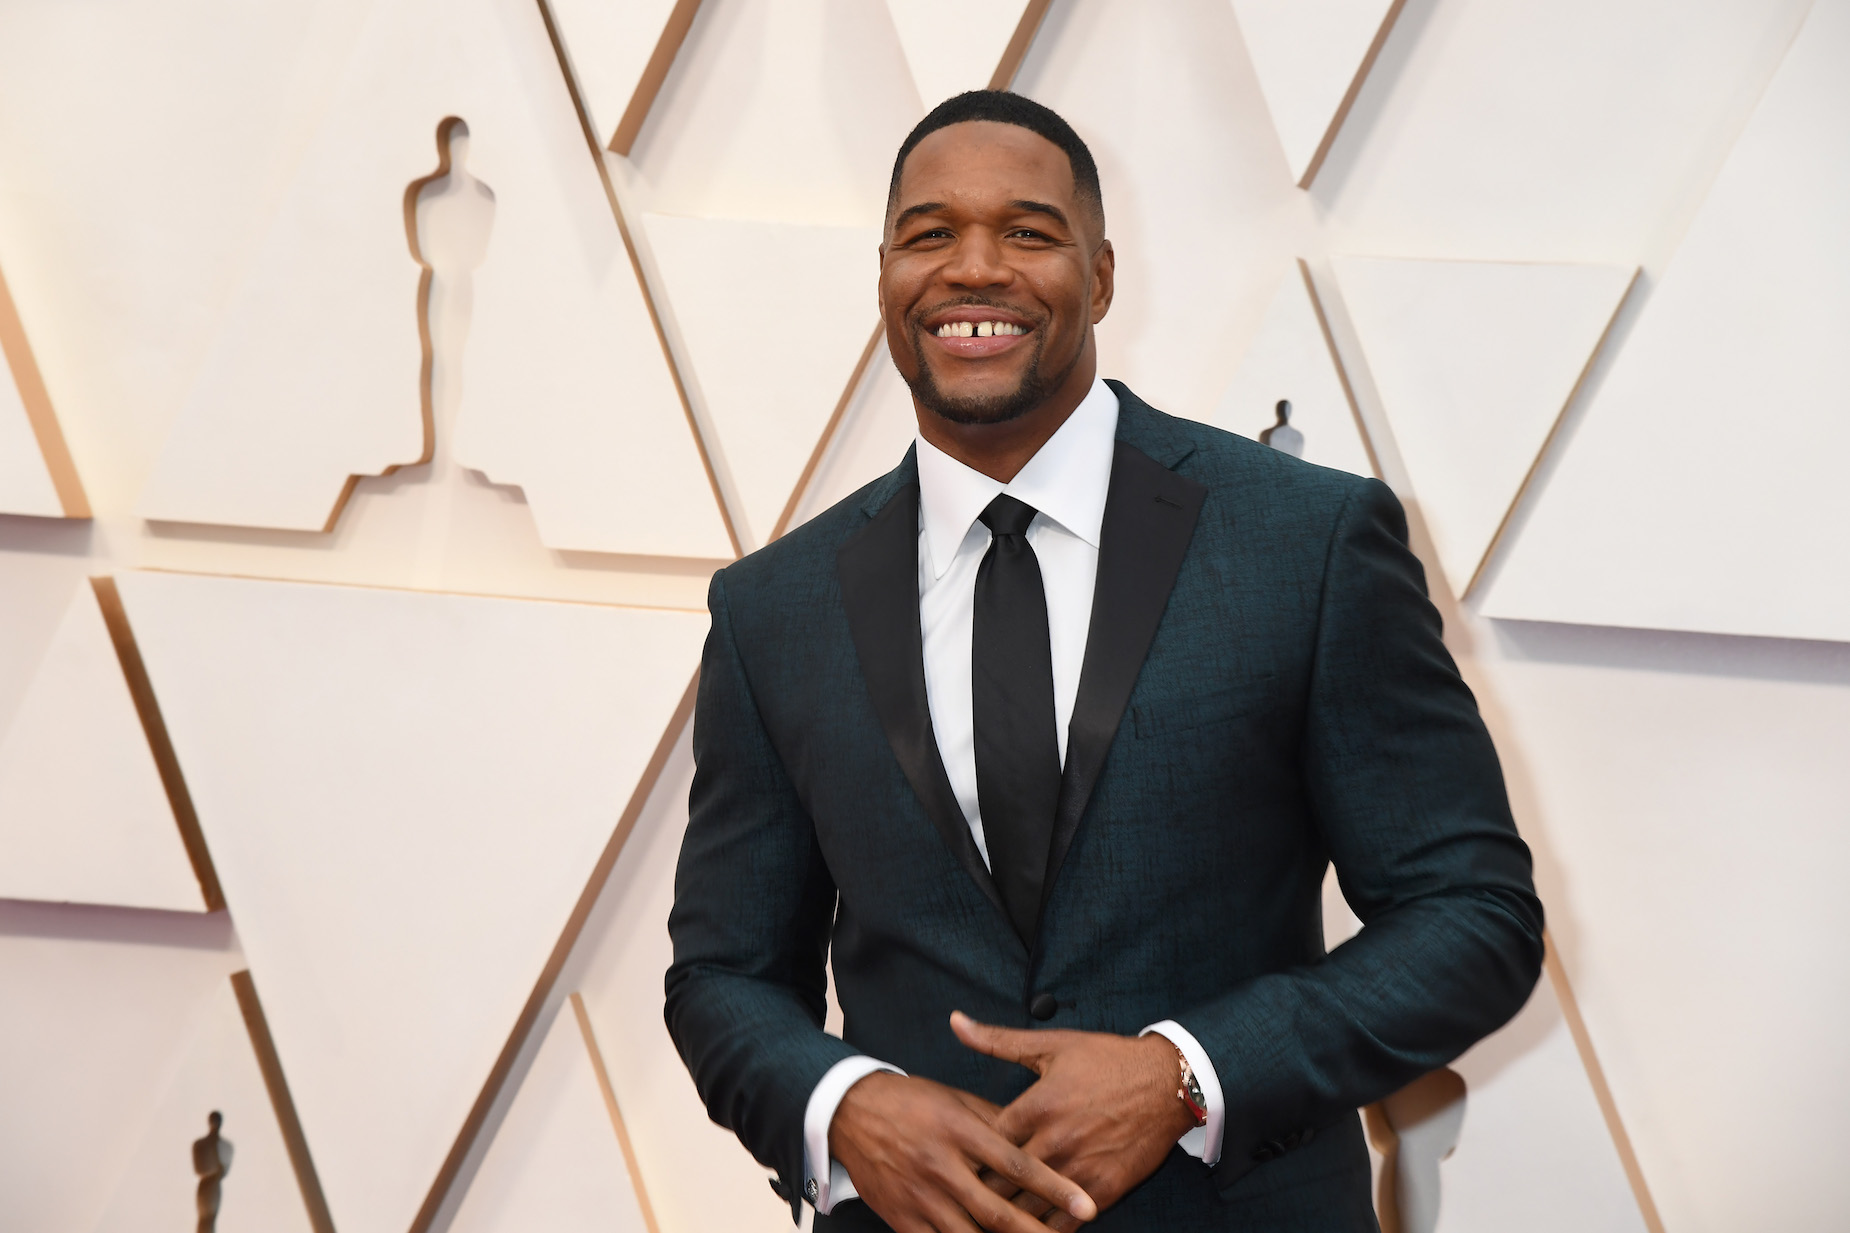 Michael Strahan has a key piece of business advice for anyone looking to change careers.